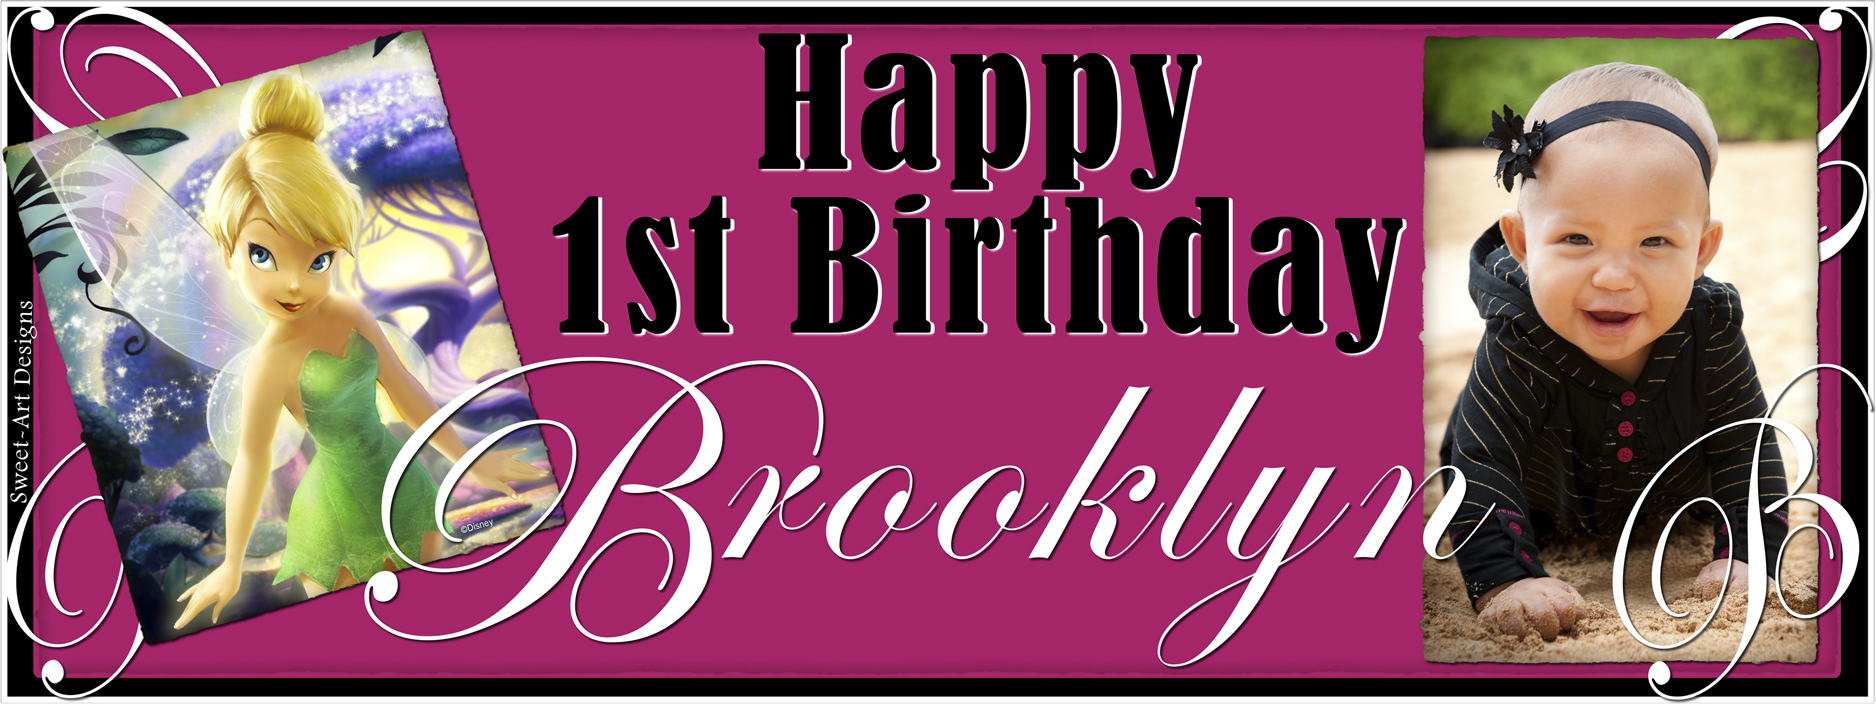 birthday banner with picture ; tinkerbell-birthday-banner-8-x-31